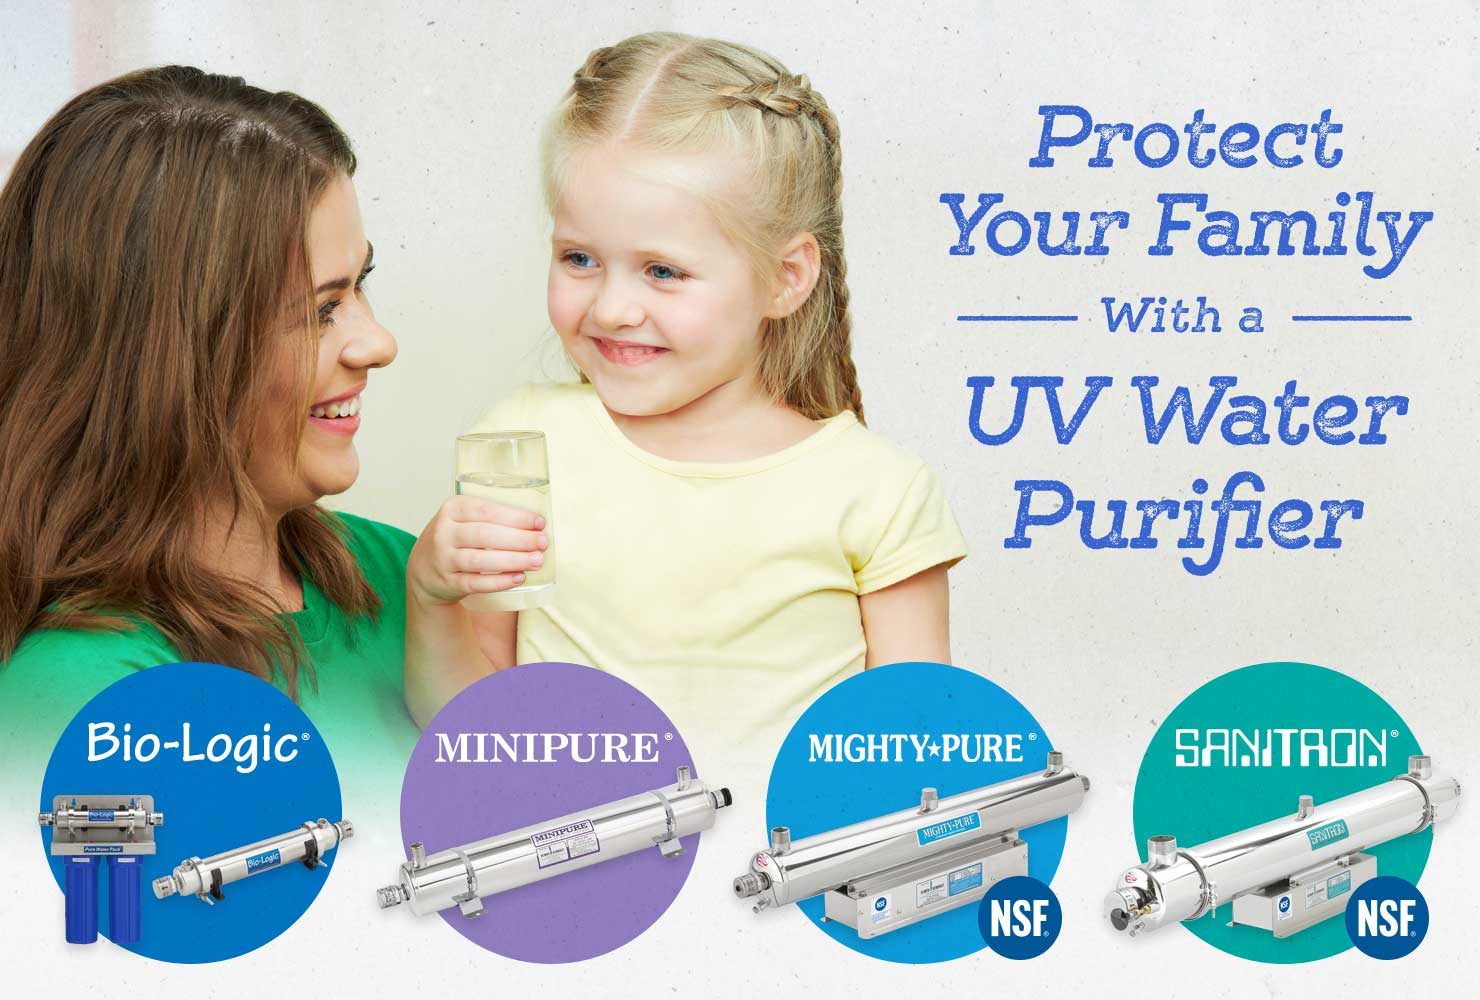 Protect Your Family with a UV Water Purifier